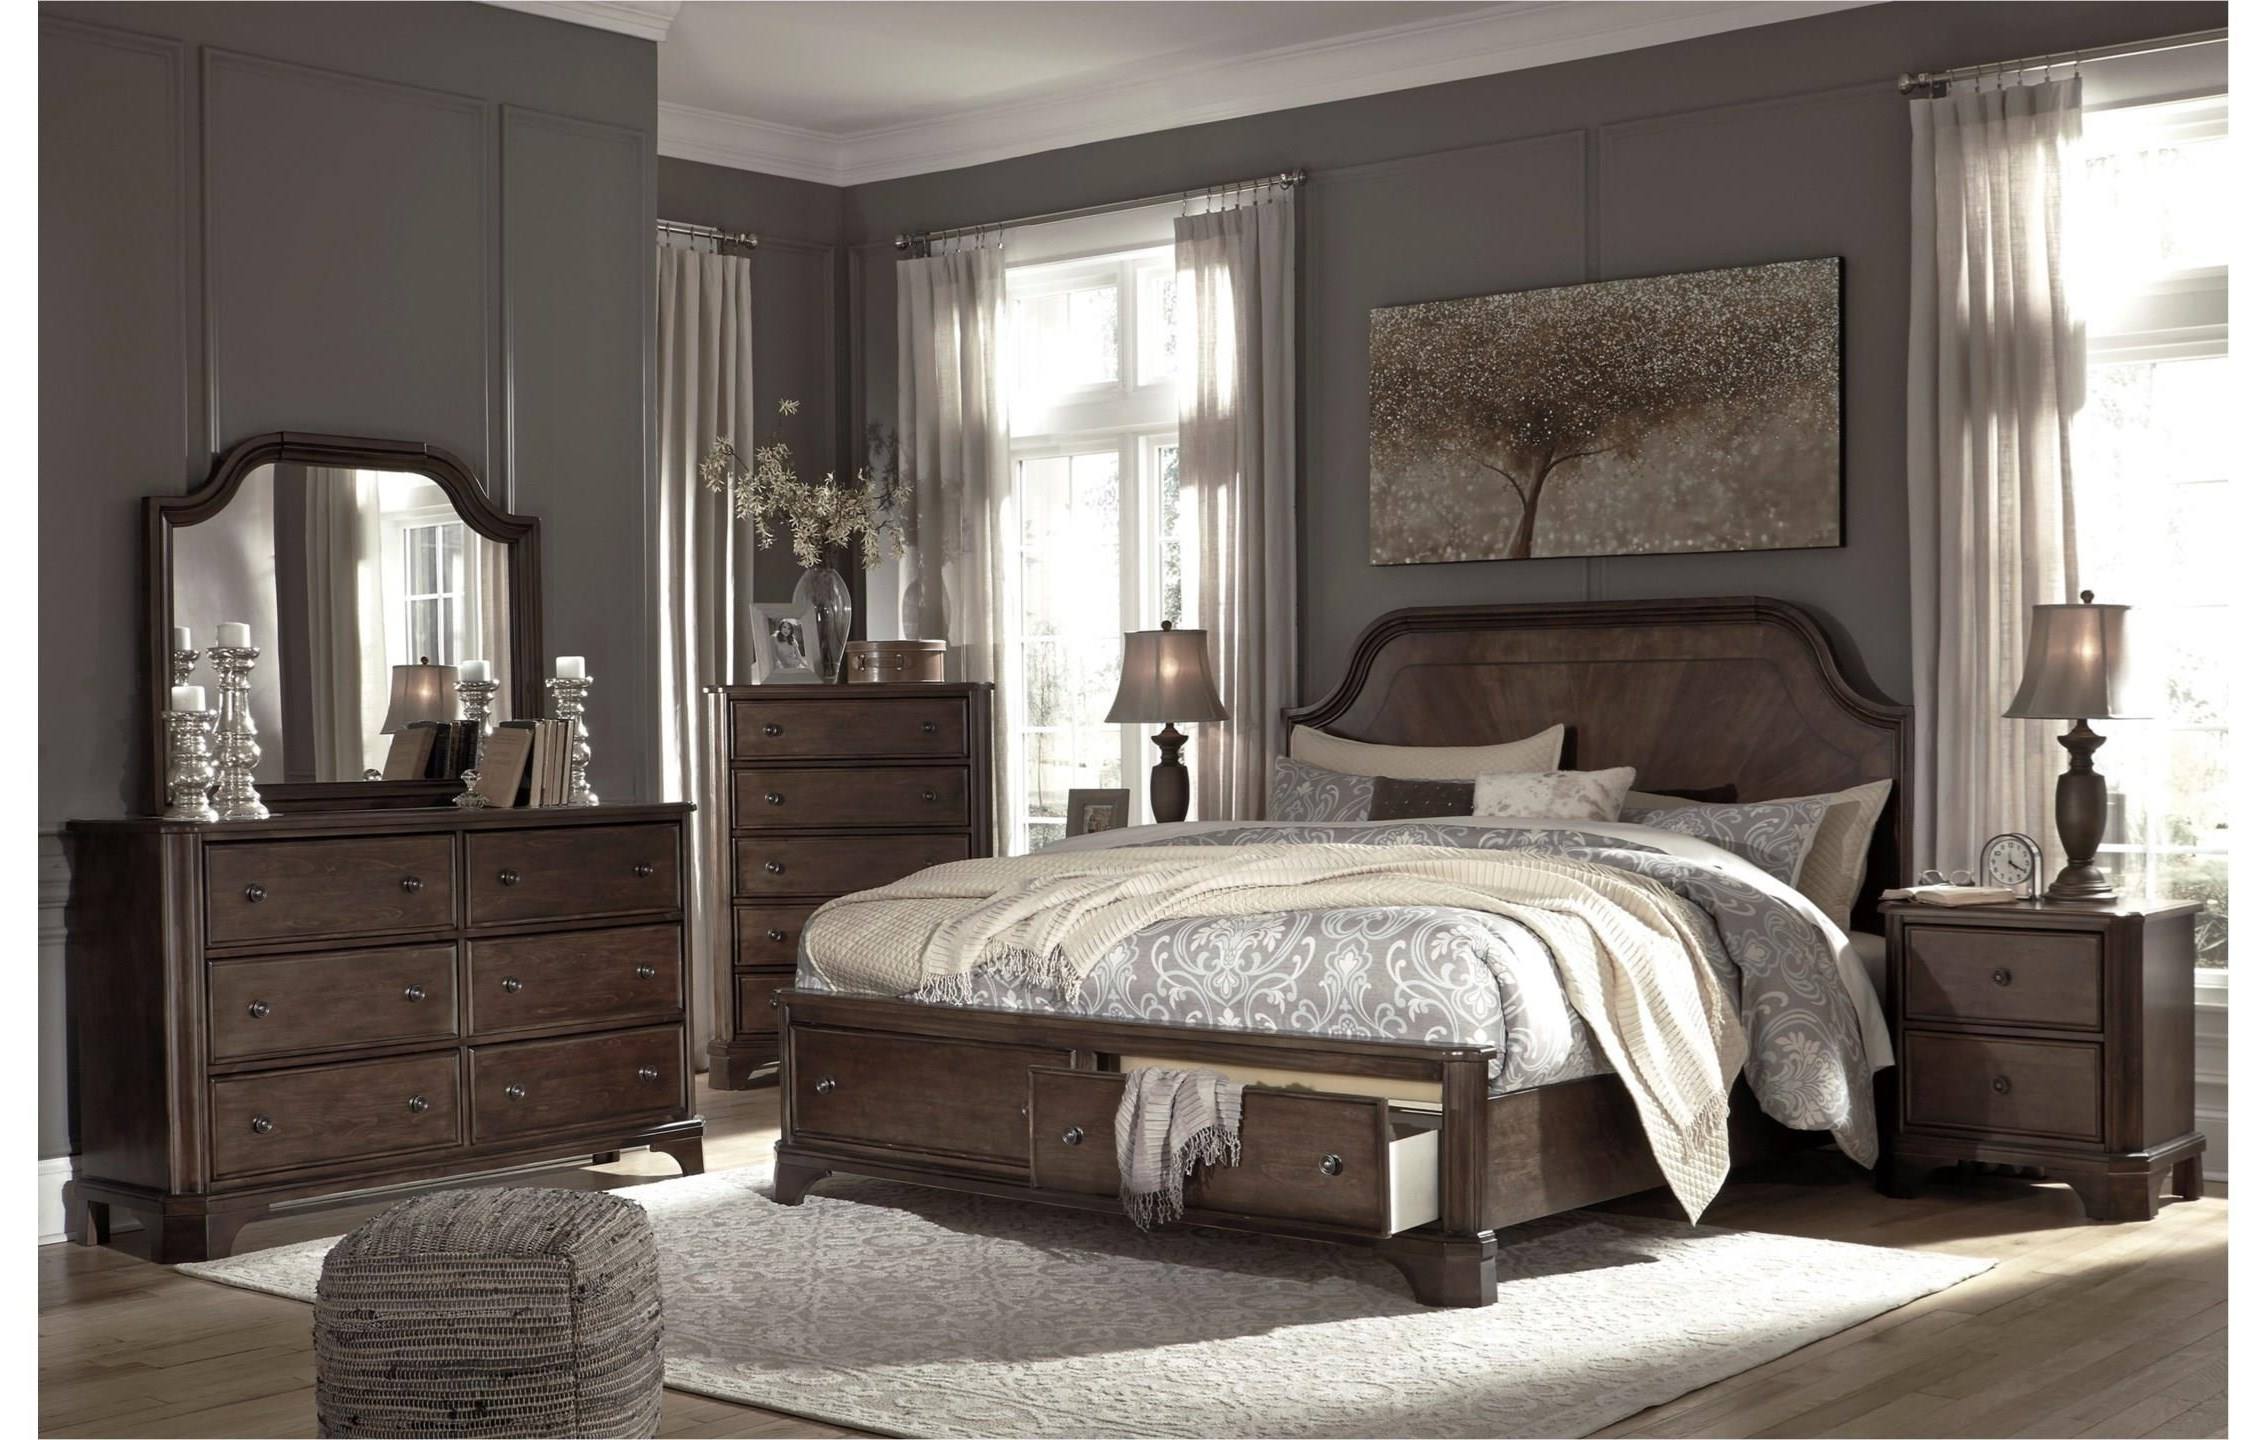 Adinton King bedroom group by Signature Design by Ashley at Value City Furniture